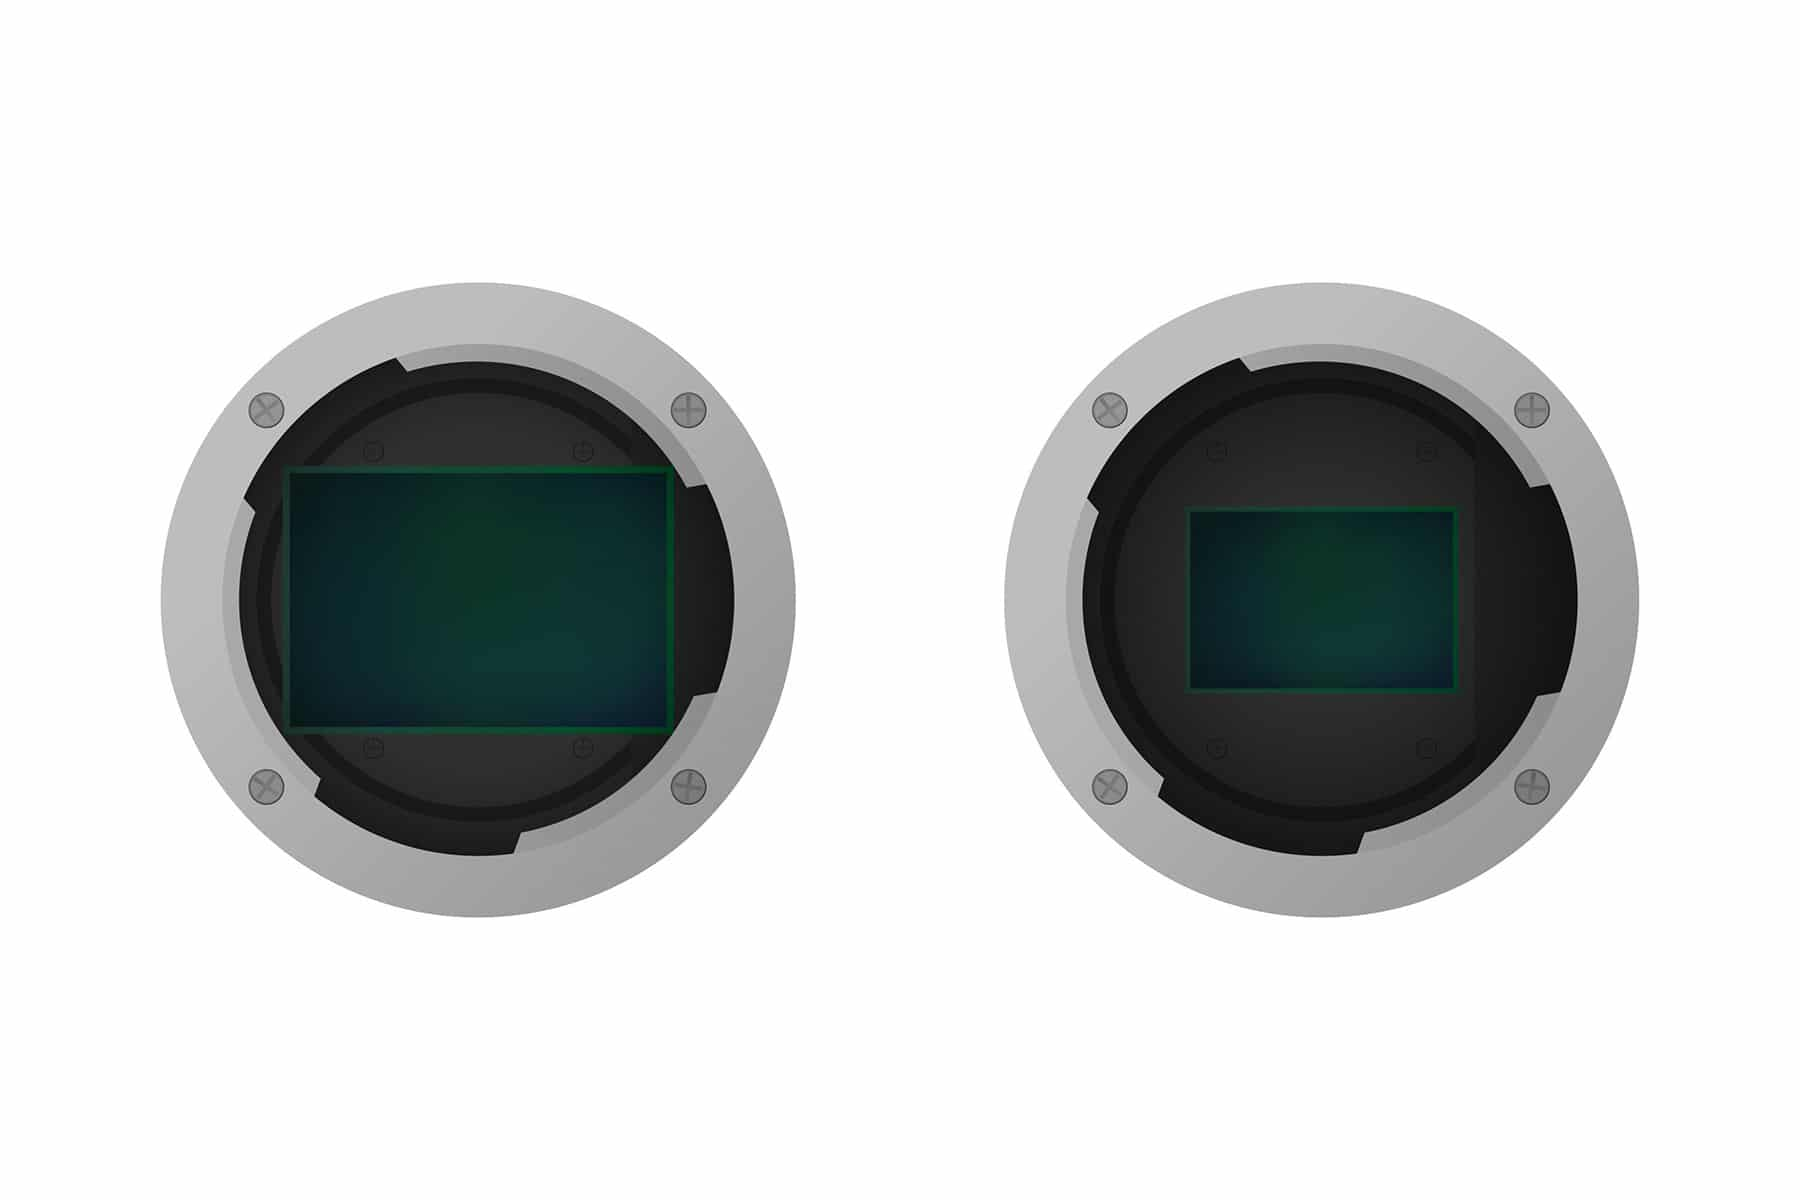 Cropped Sensor and Full Frame Sensor Cameras